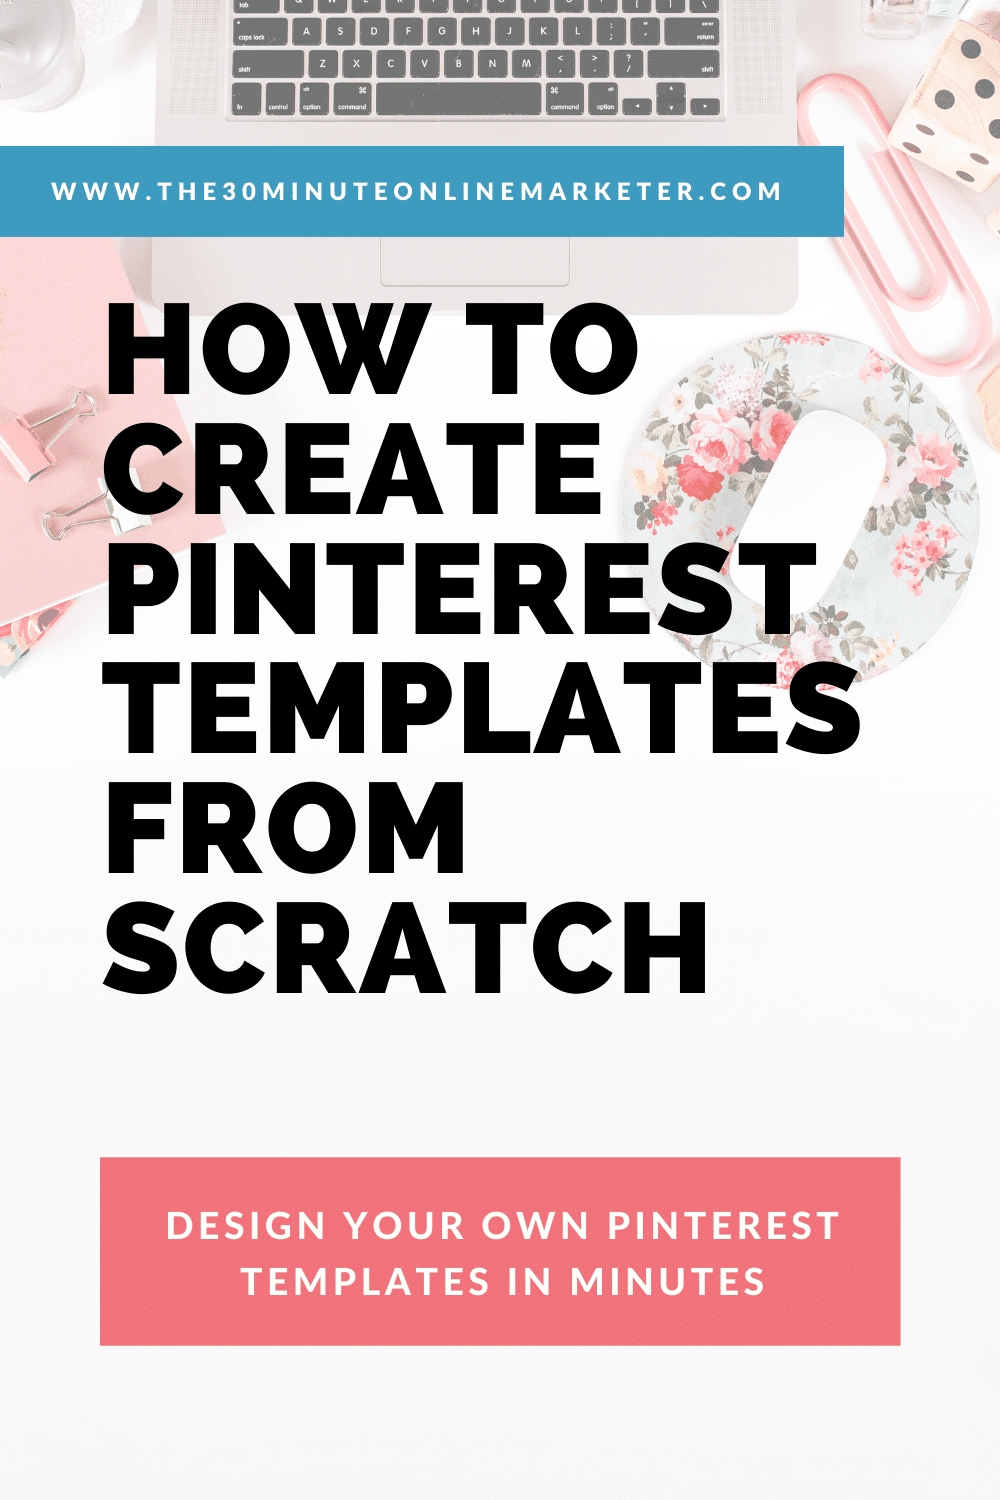 How to create Pinterest templates in minutes